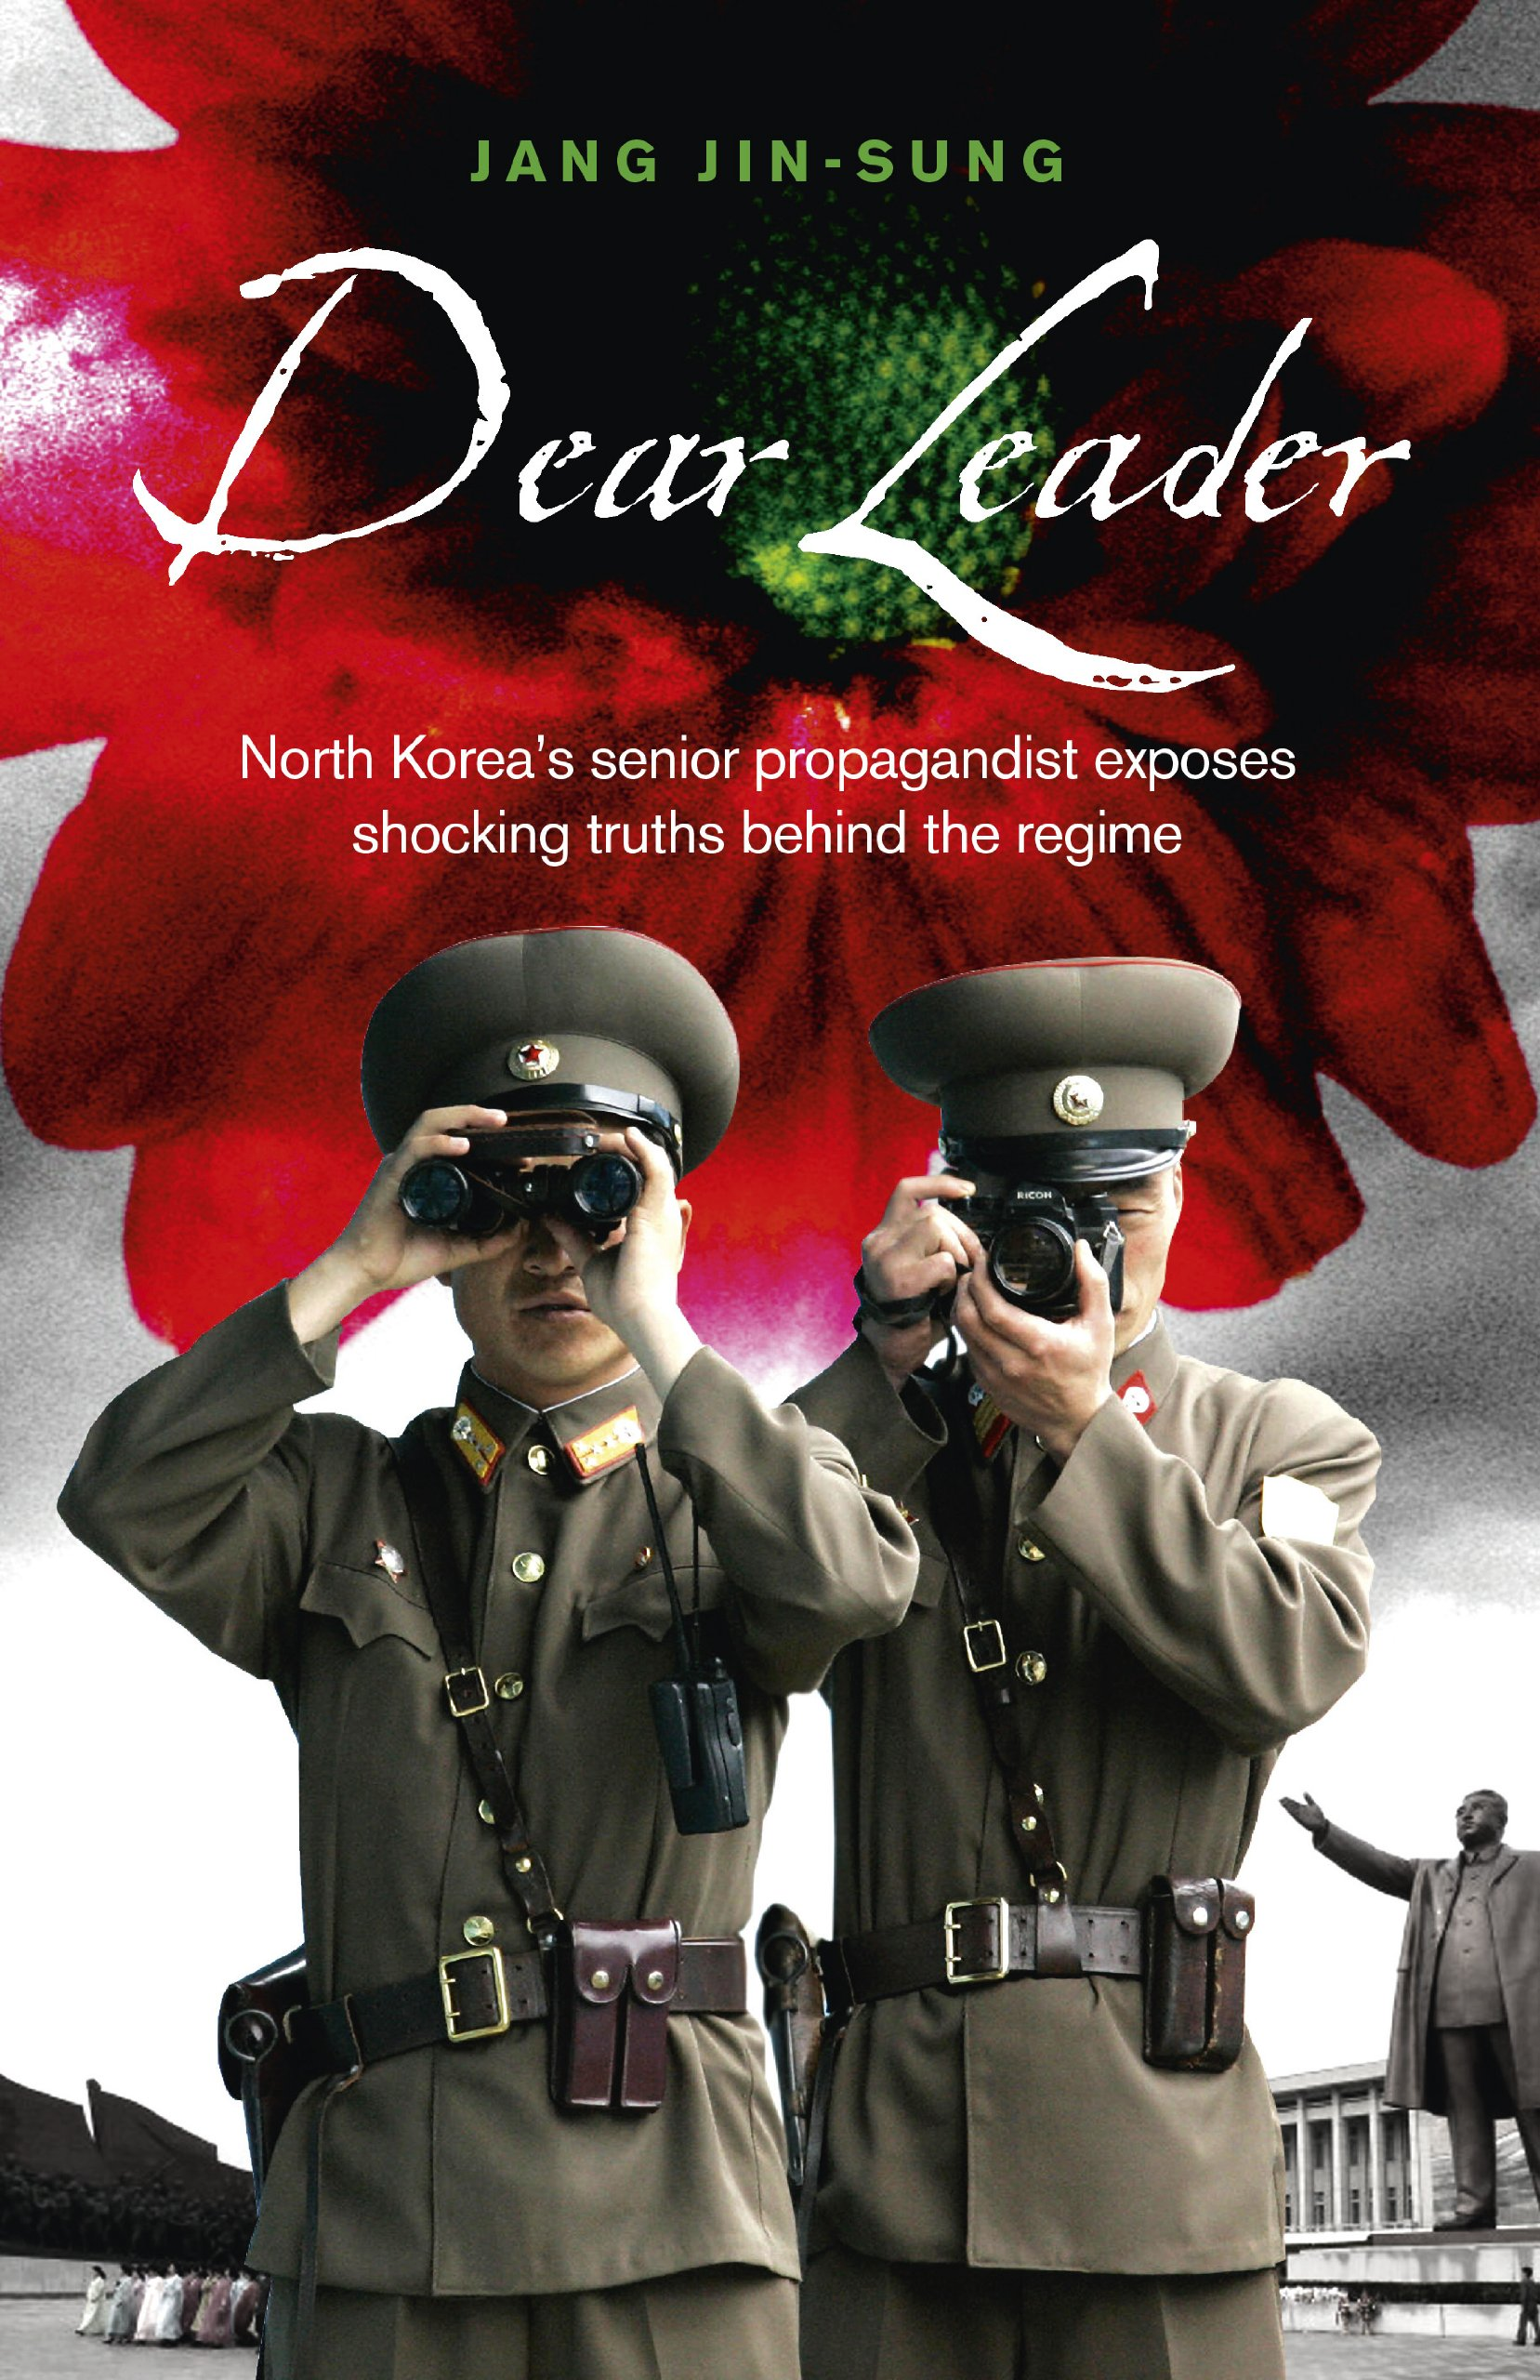 Dear Leader - In this book, a high-ranking leader defects. However, it was details about the OGD which really stood out from this narrative. The mysterious Organisation and Guidance Department appears to be the power behind the leader and the people who really make decisions in the country.